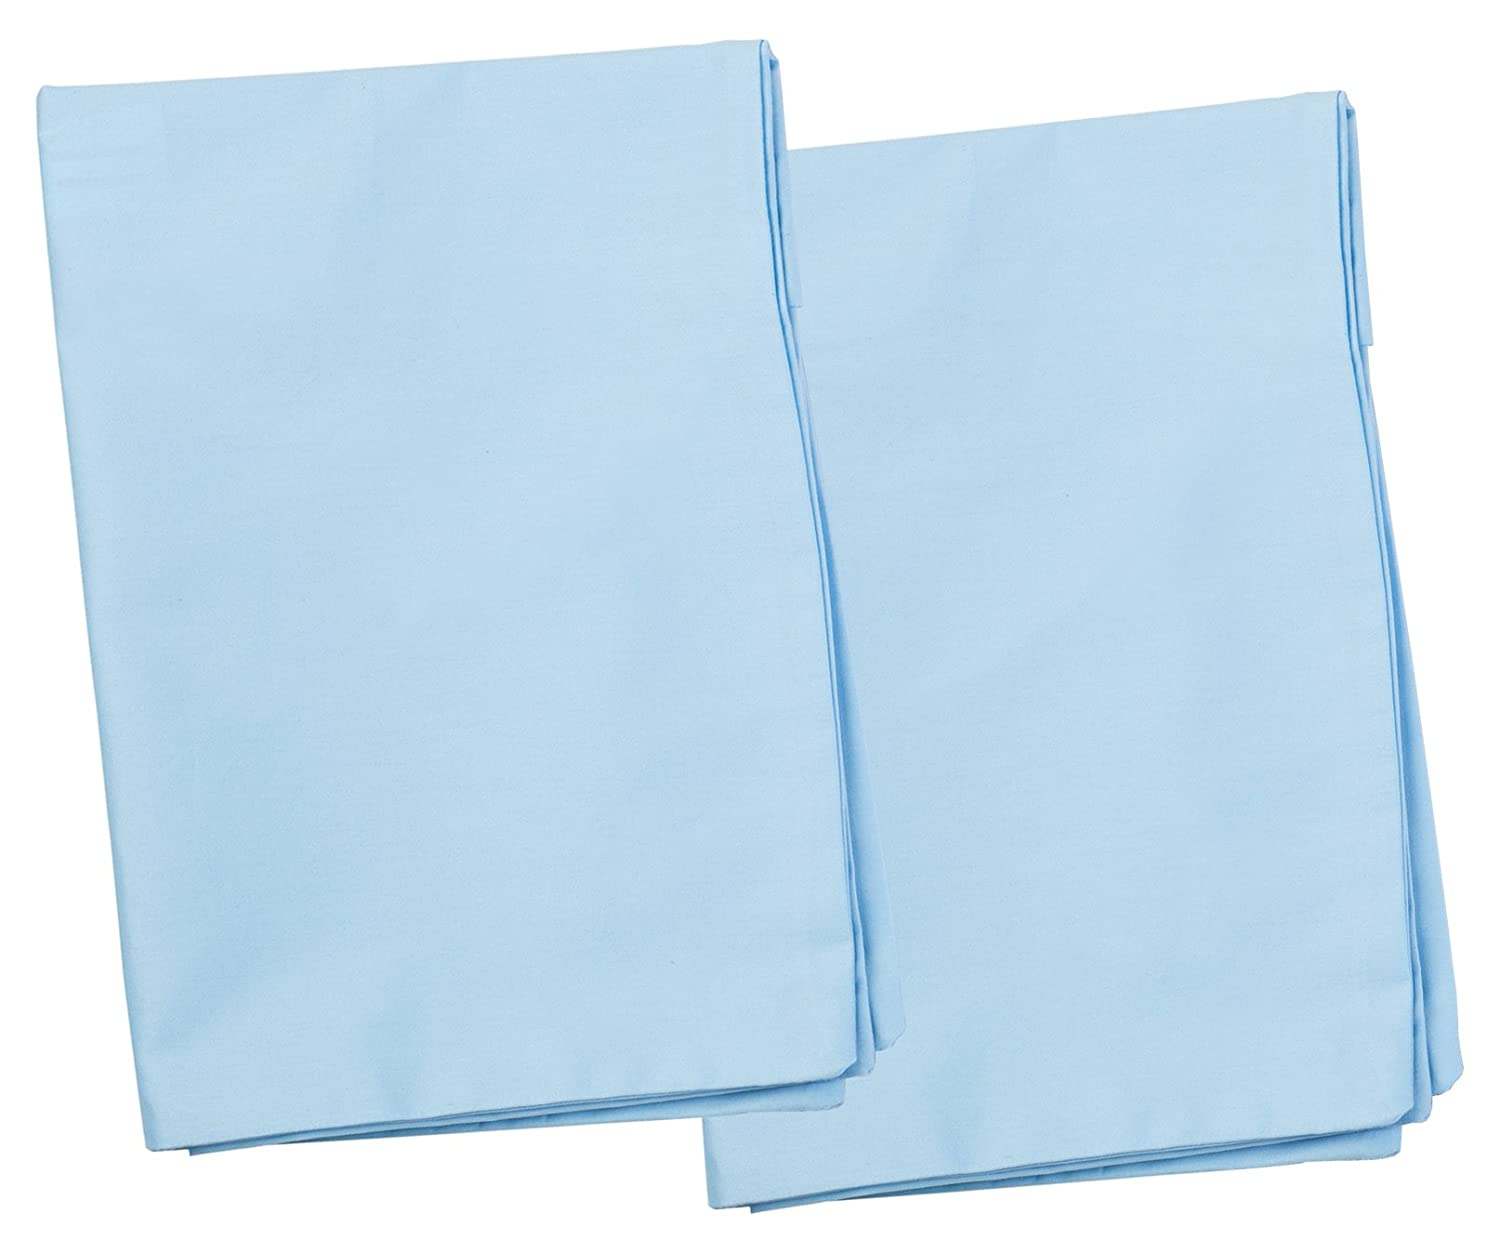 2 Blue Toddler Pillowcases - Envelope Style - For Pillows Sized 13x18 and 14x19 - 100% Cotton With Soft Sateen Weave - Machine Washable ZadisonJaxx ZJP-ZJTPC2BCS